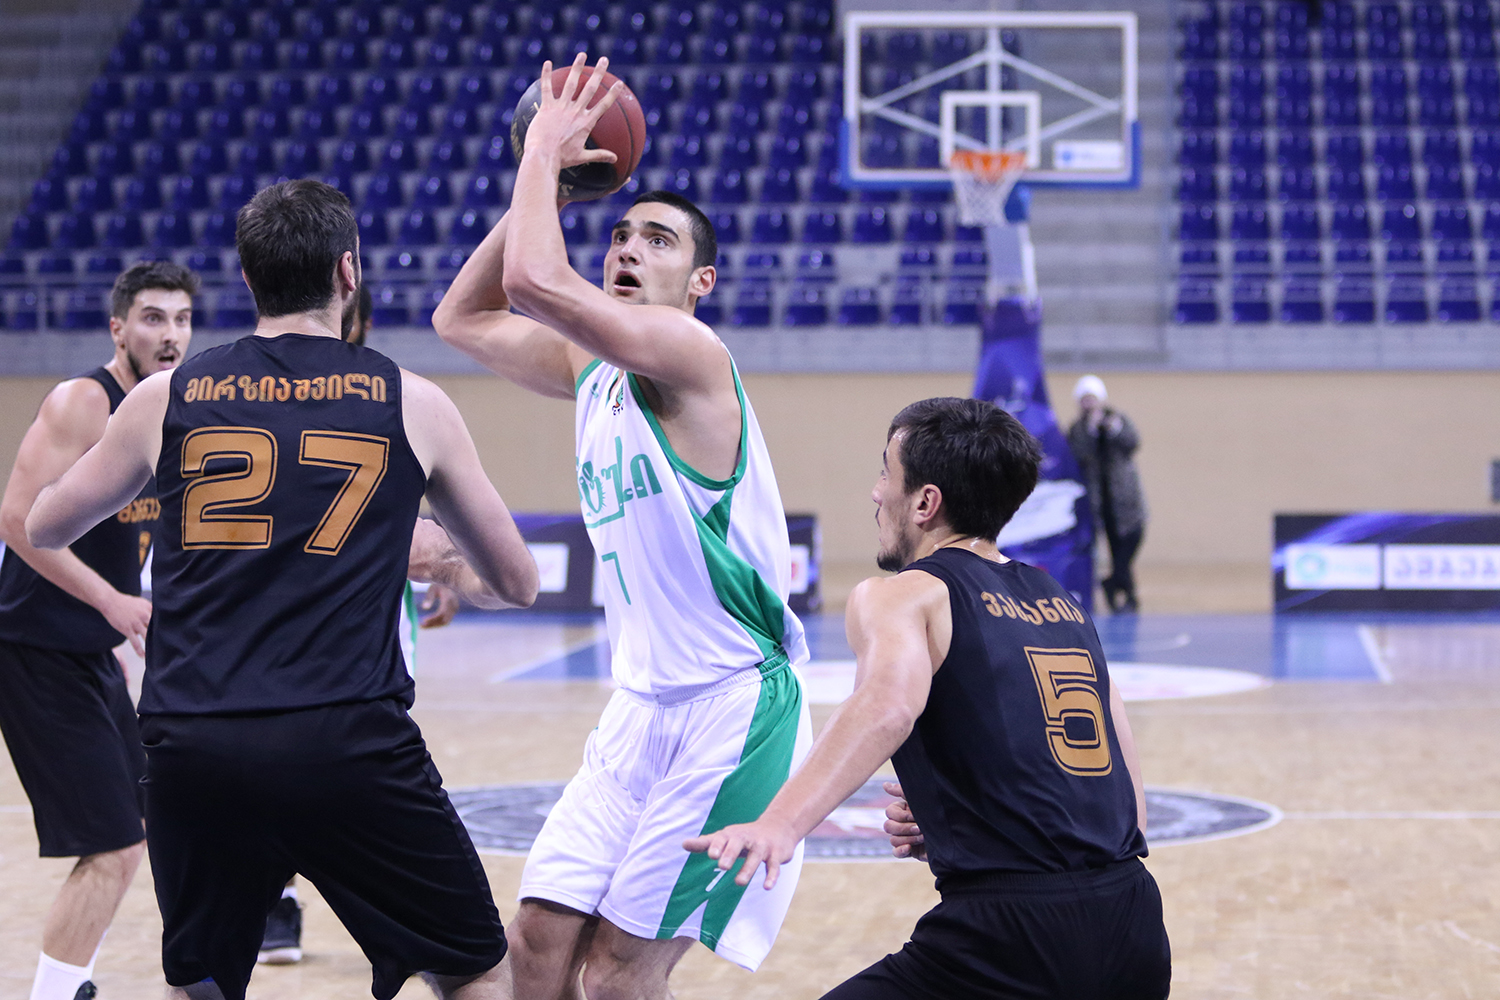 Marneuli lost against Cactus with 15-points difference